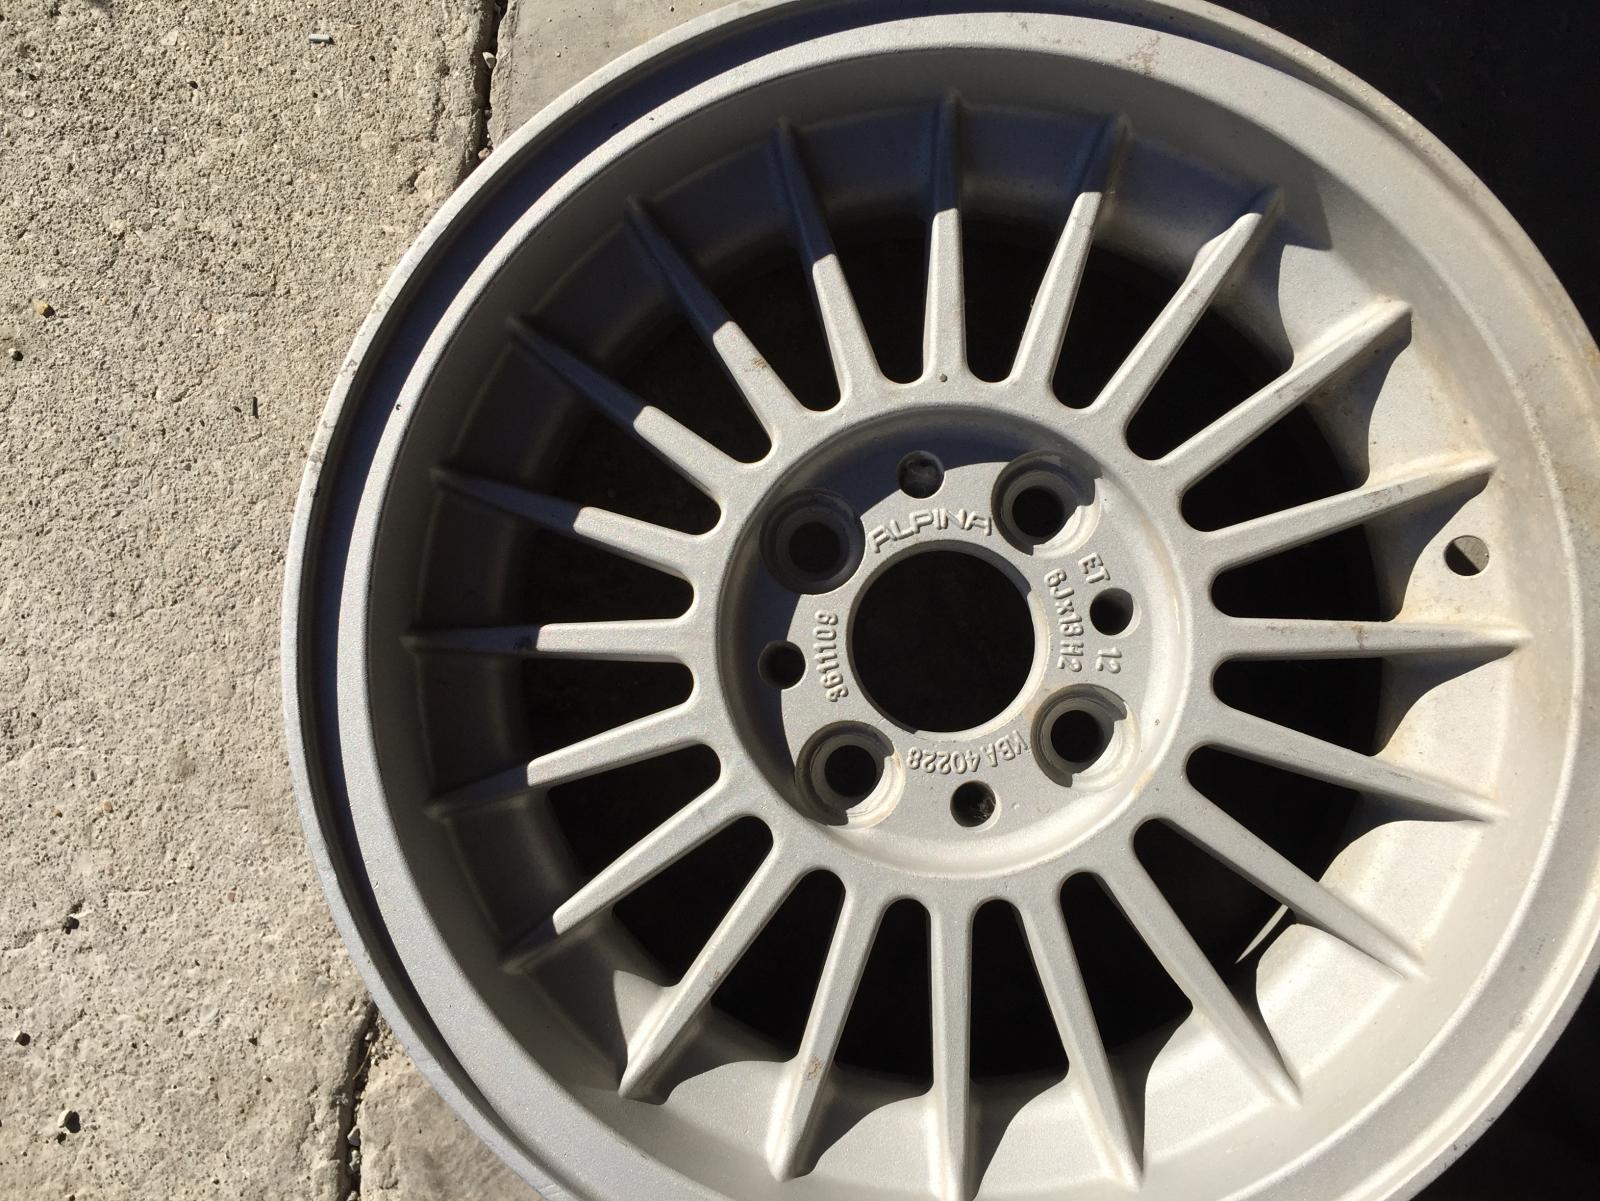 Alpina Wheels Parts For Sale BMW FAQ - Bmw alpina rims for sale